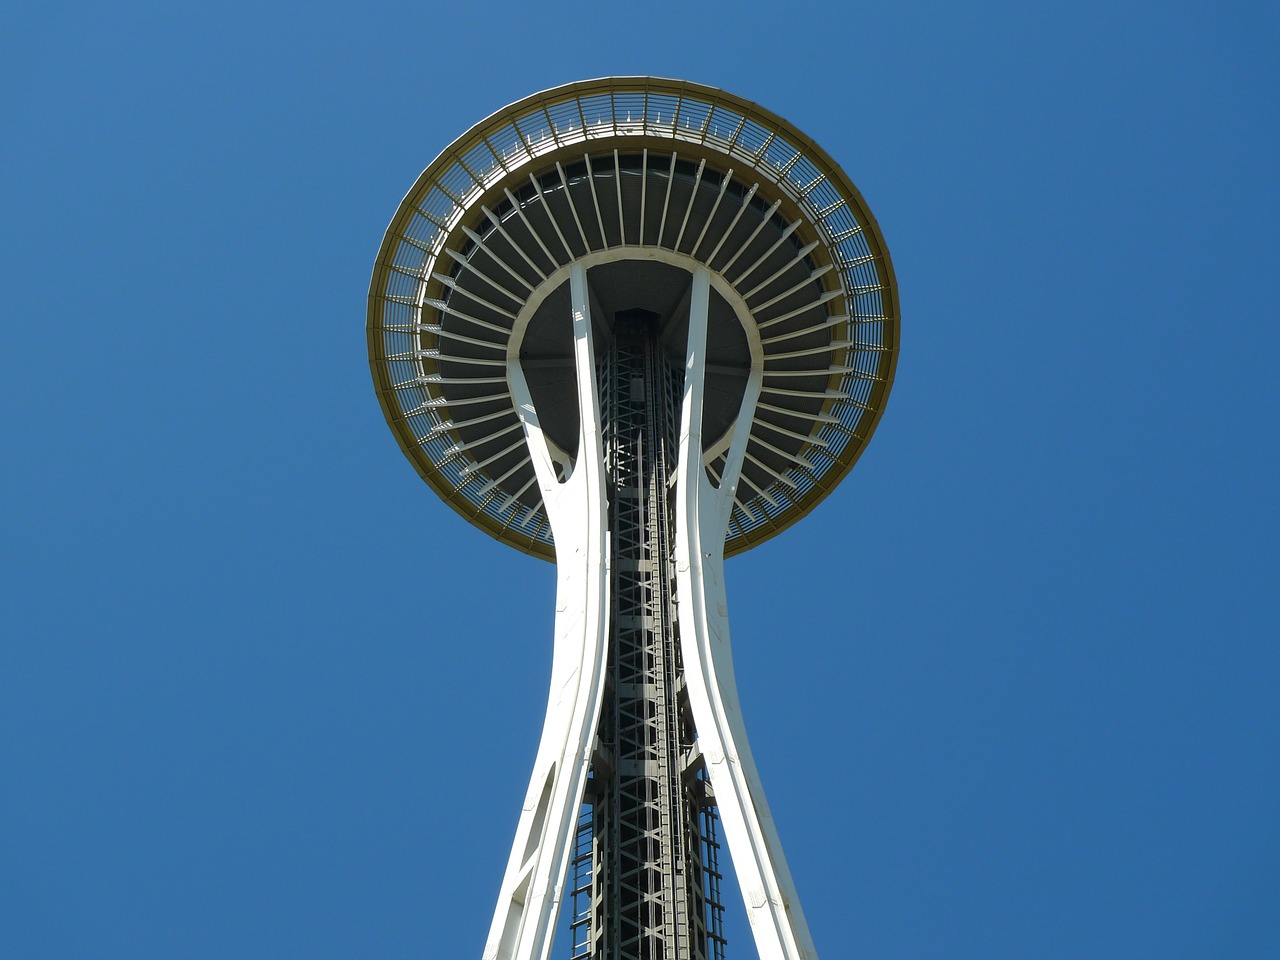 space needle seattle washington free photo